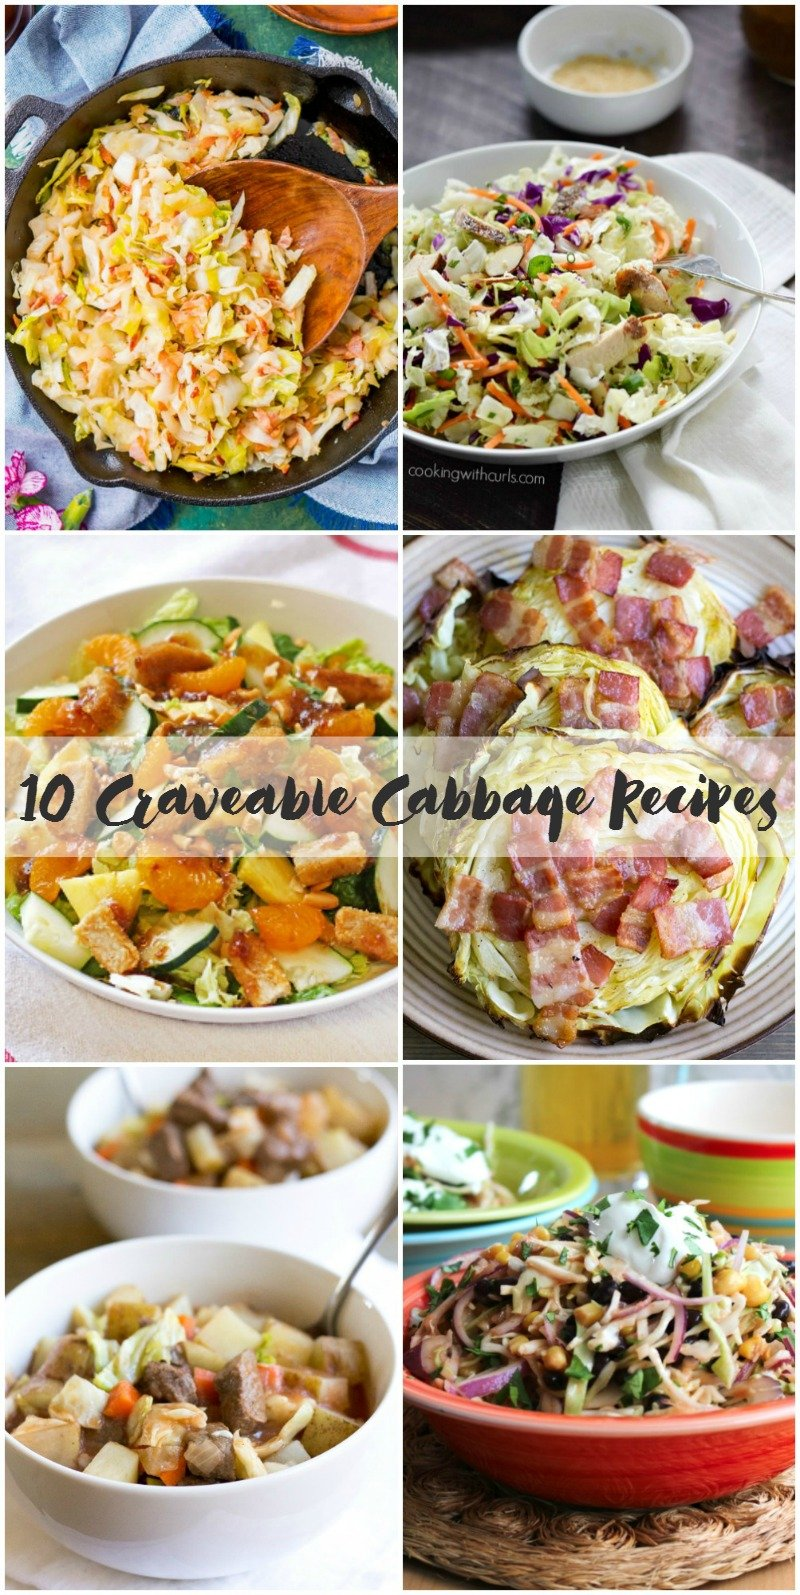 Easy chow mein recipe plus 9 more cabbage recipes.